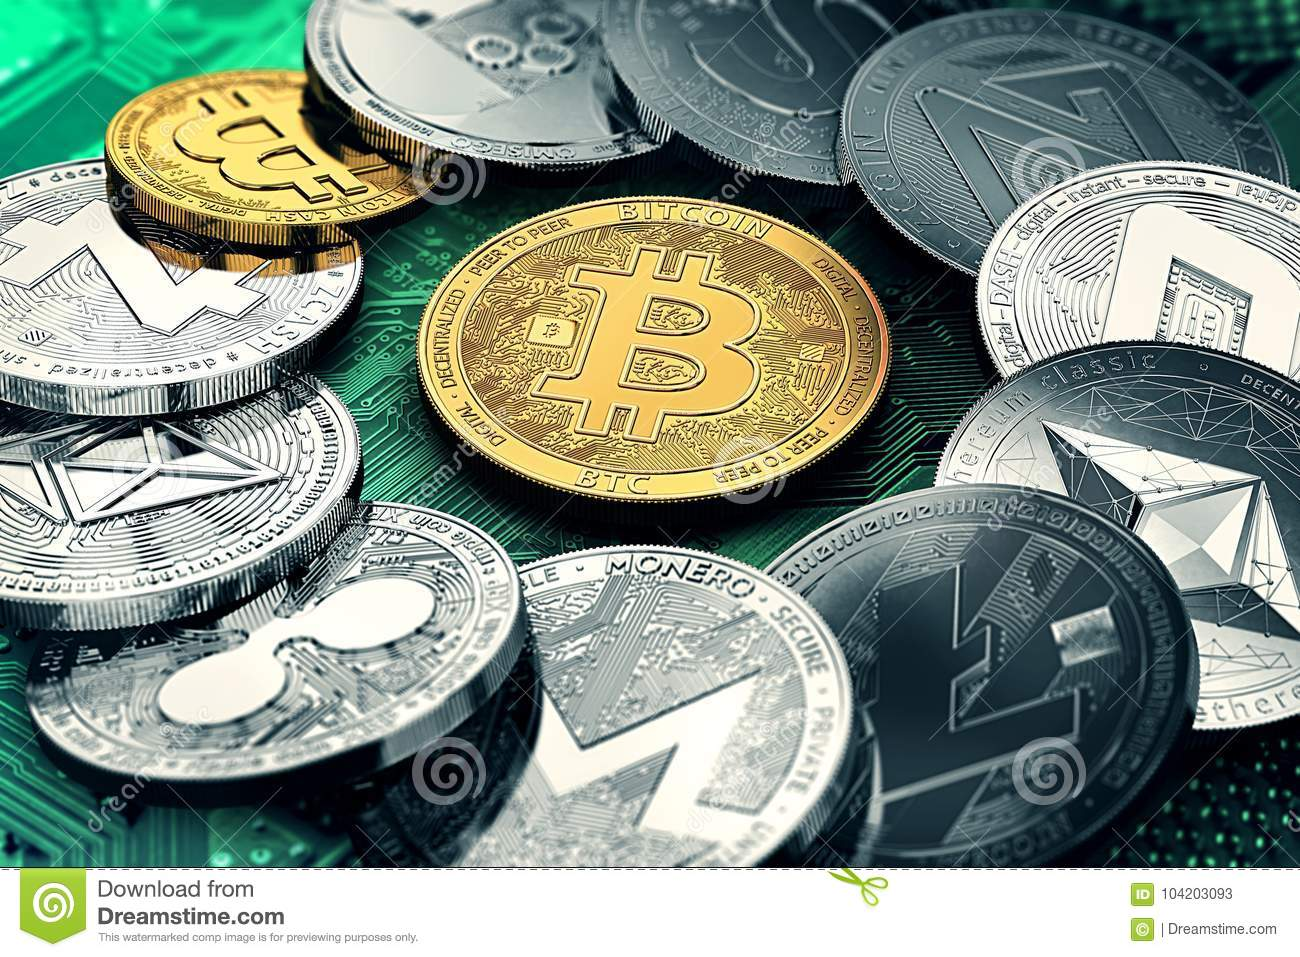 10 most valuable cryptocurrencies